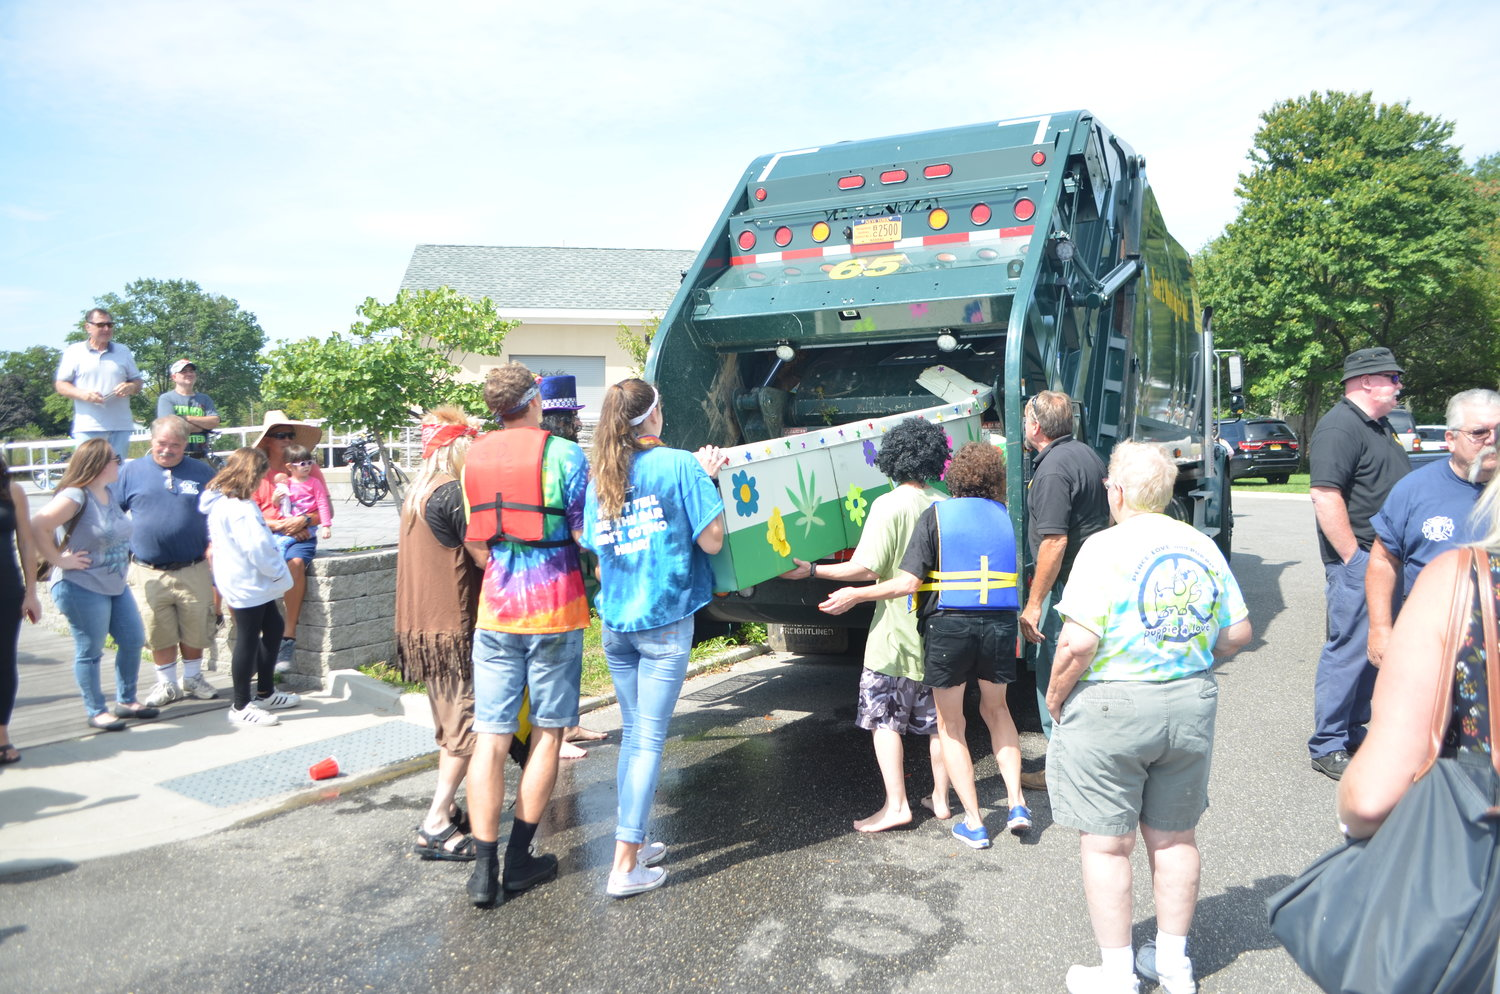 The winners of the race inserted their boat into a sanitation truck after the race.